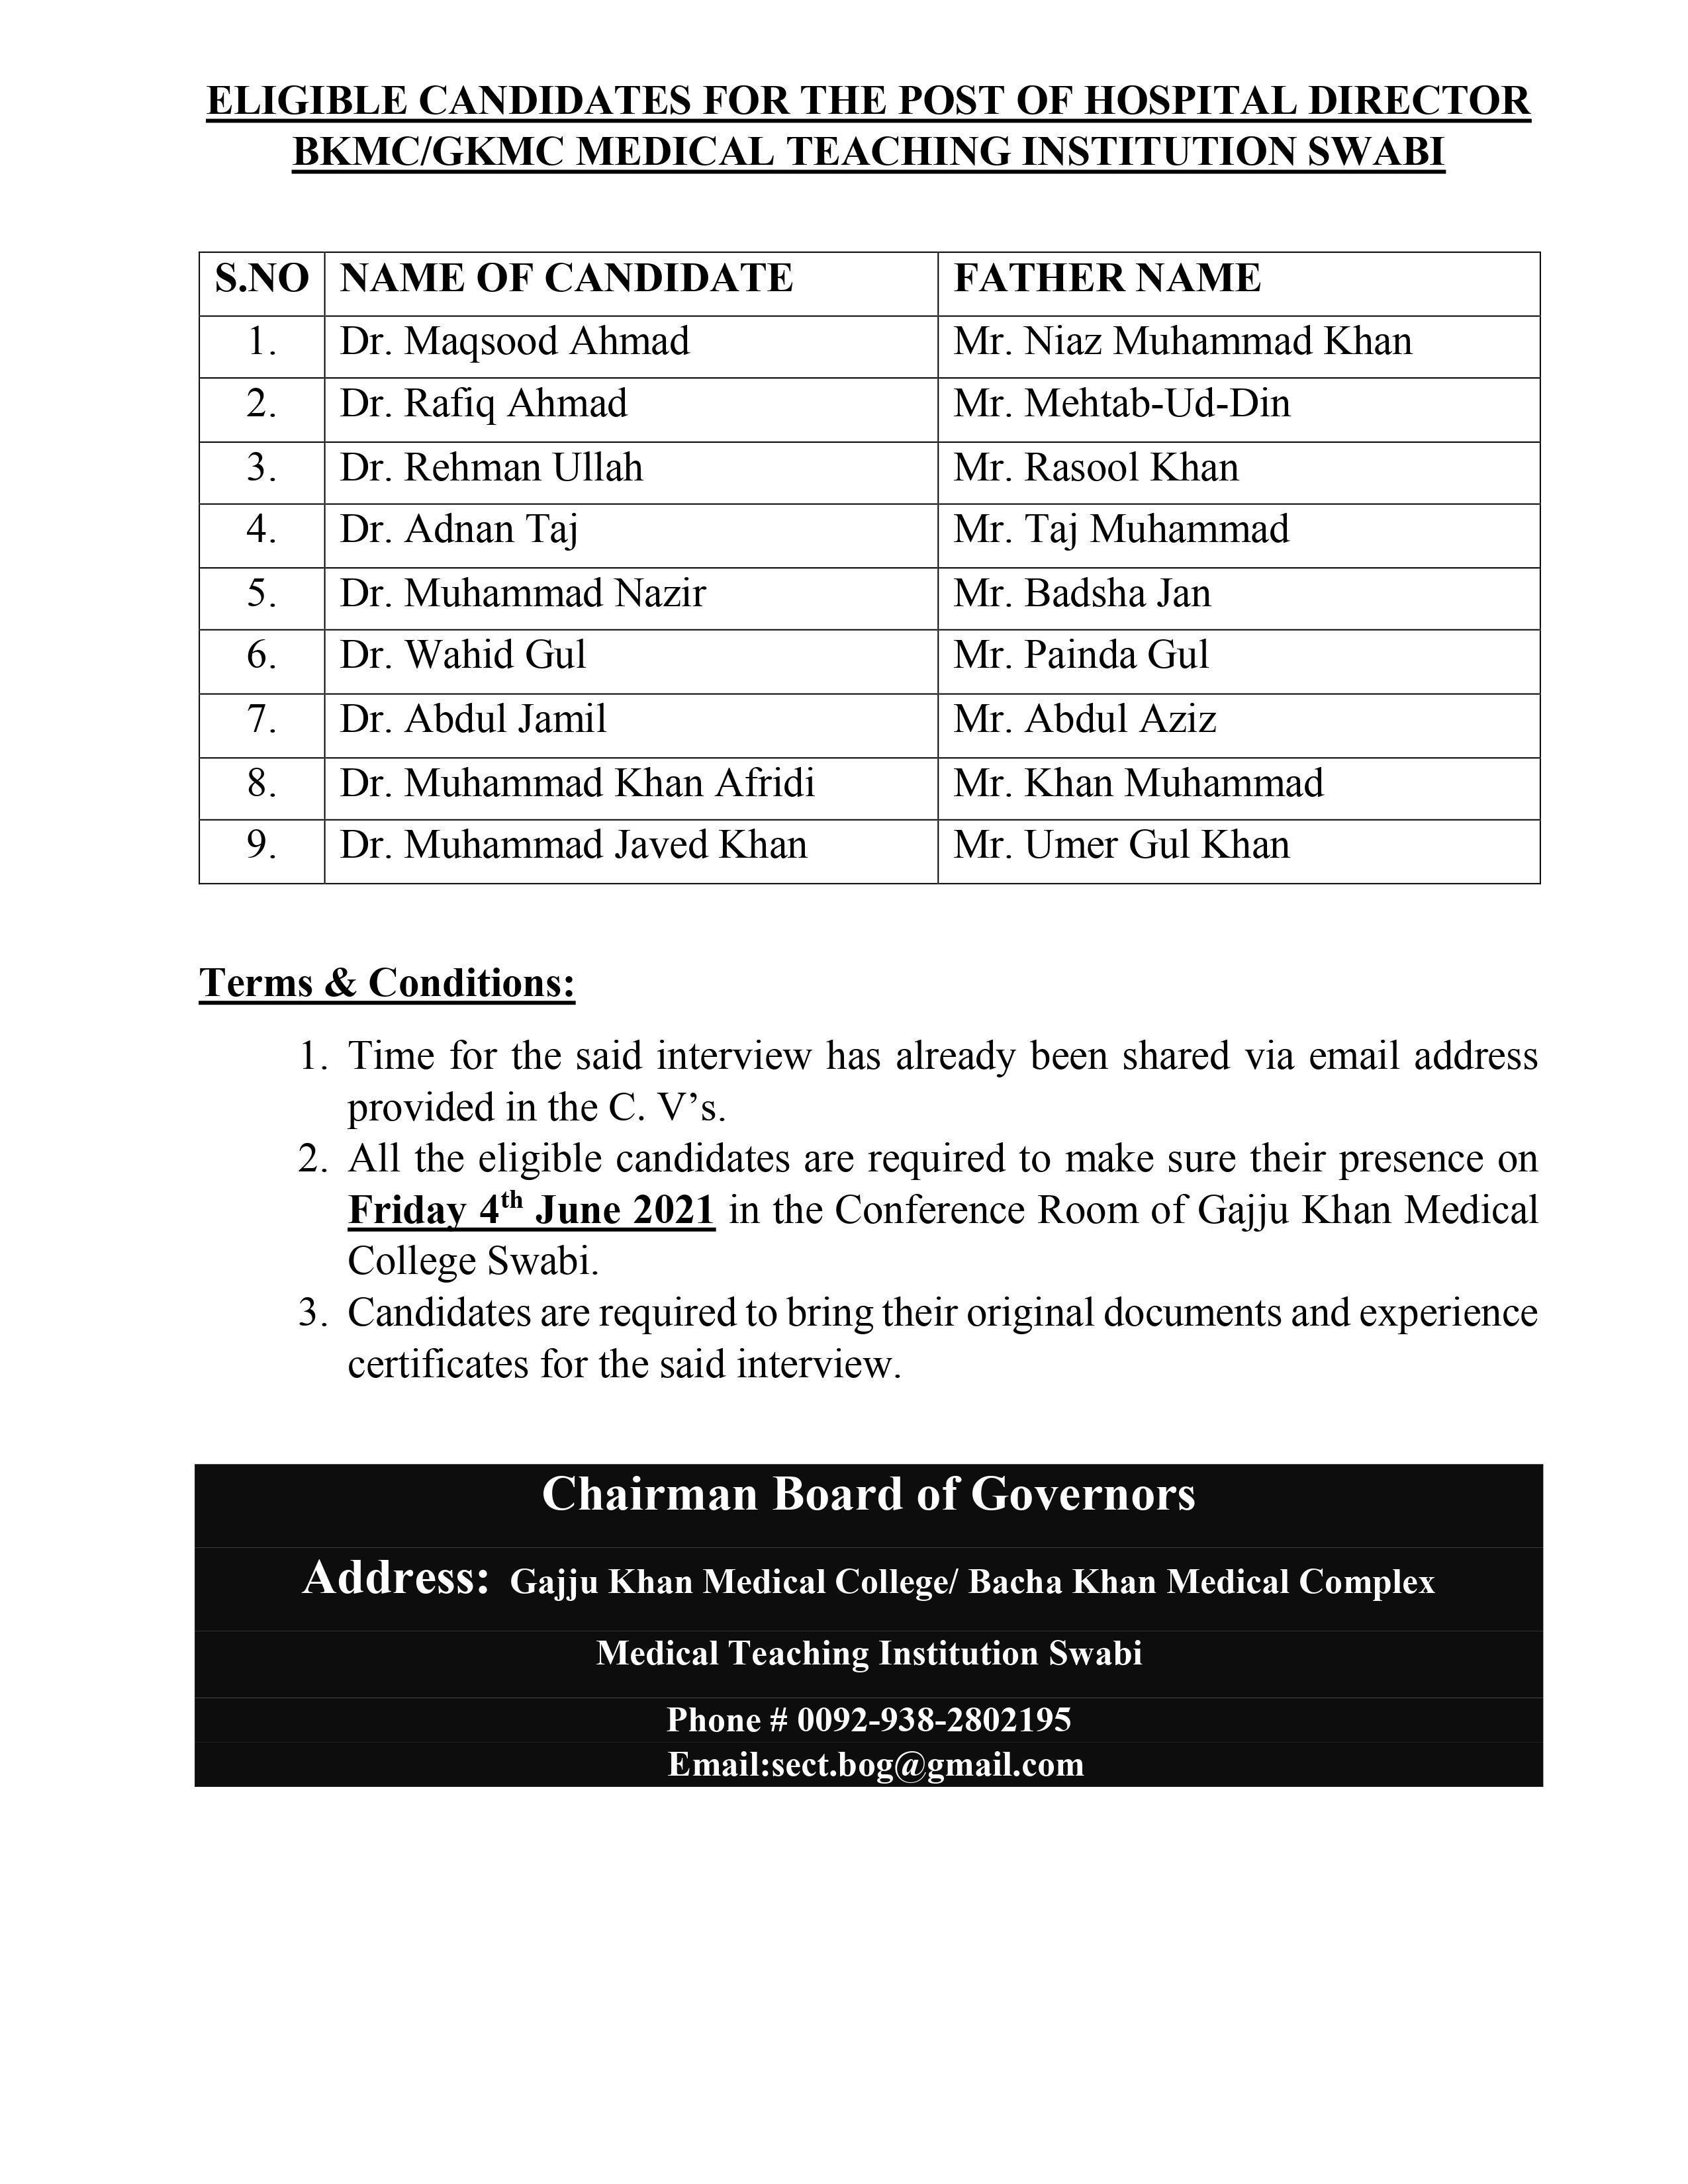 Eligible Candidate for interview for  the Post of Hospital Director BKMC / GKMC MTI Swabi.